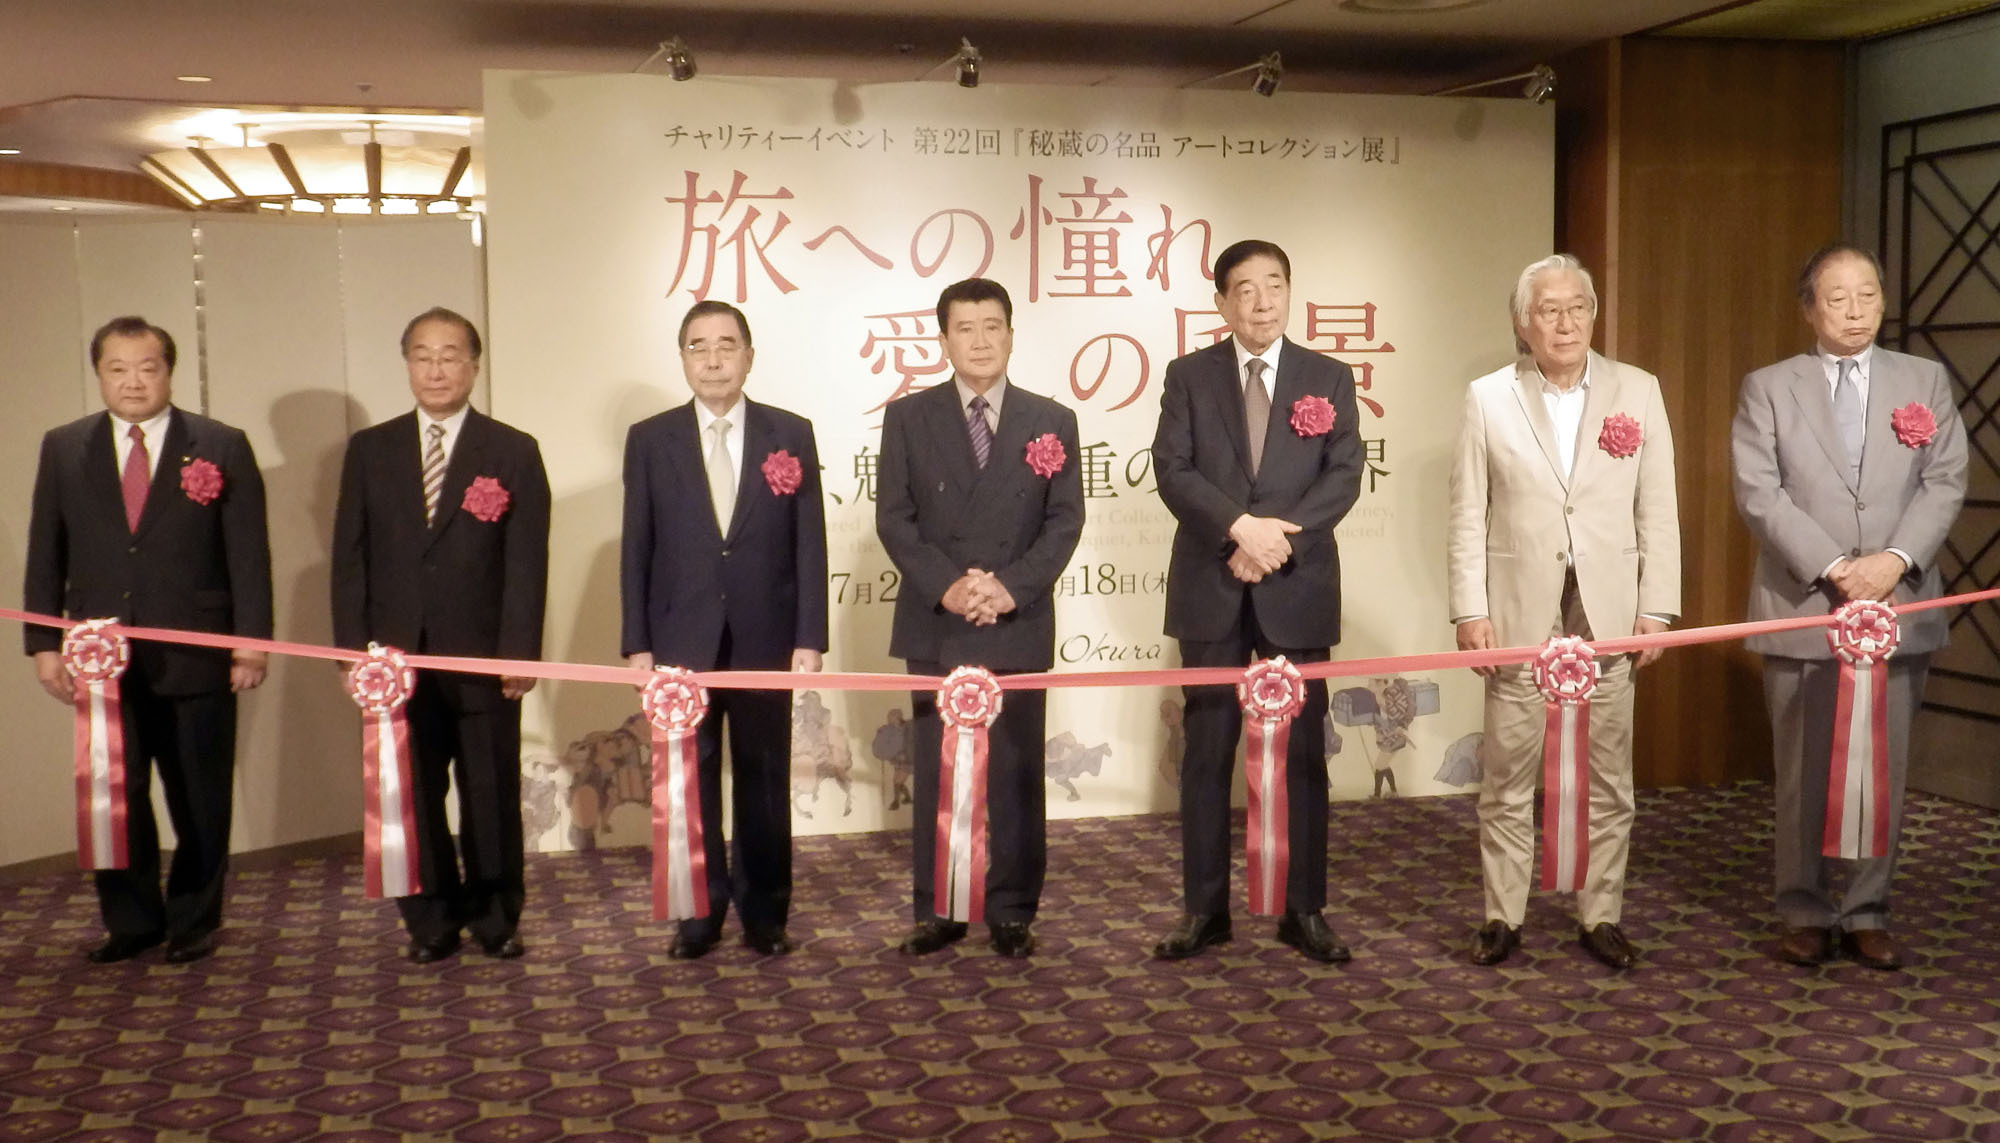 "From left: Masaki Ikeda, president of Hotel Okura Tokyo; Katsuhiko Murakami, chairman of the Okura Museum of Art; Tomijiro Morita, senior advisor at Dai-ichi Life Insurance Co.; actor Kotaro Satomi; Tadateru Konoe, president of the International Federation of Red Cross and Red Crescent Societies; Hiroshi Saito, honorary advisor at Mizuho Financial Group; and Yoshihiko Okura, president of the Okura Museum of Art, pose at the Hotel Okura Tokyo on July 27 at the opening ceremony of a charity art exhibition titled ""Longing for a Journey, Beloved Scenery — The Landscape of Marquet, Kaii and Hiroshige,"" which runs through Aug. 18. 